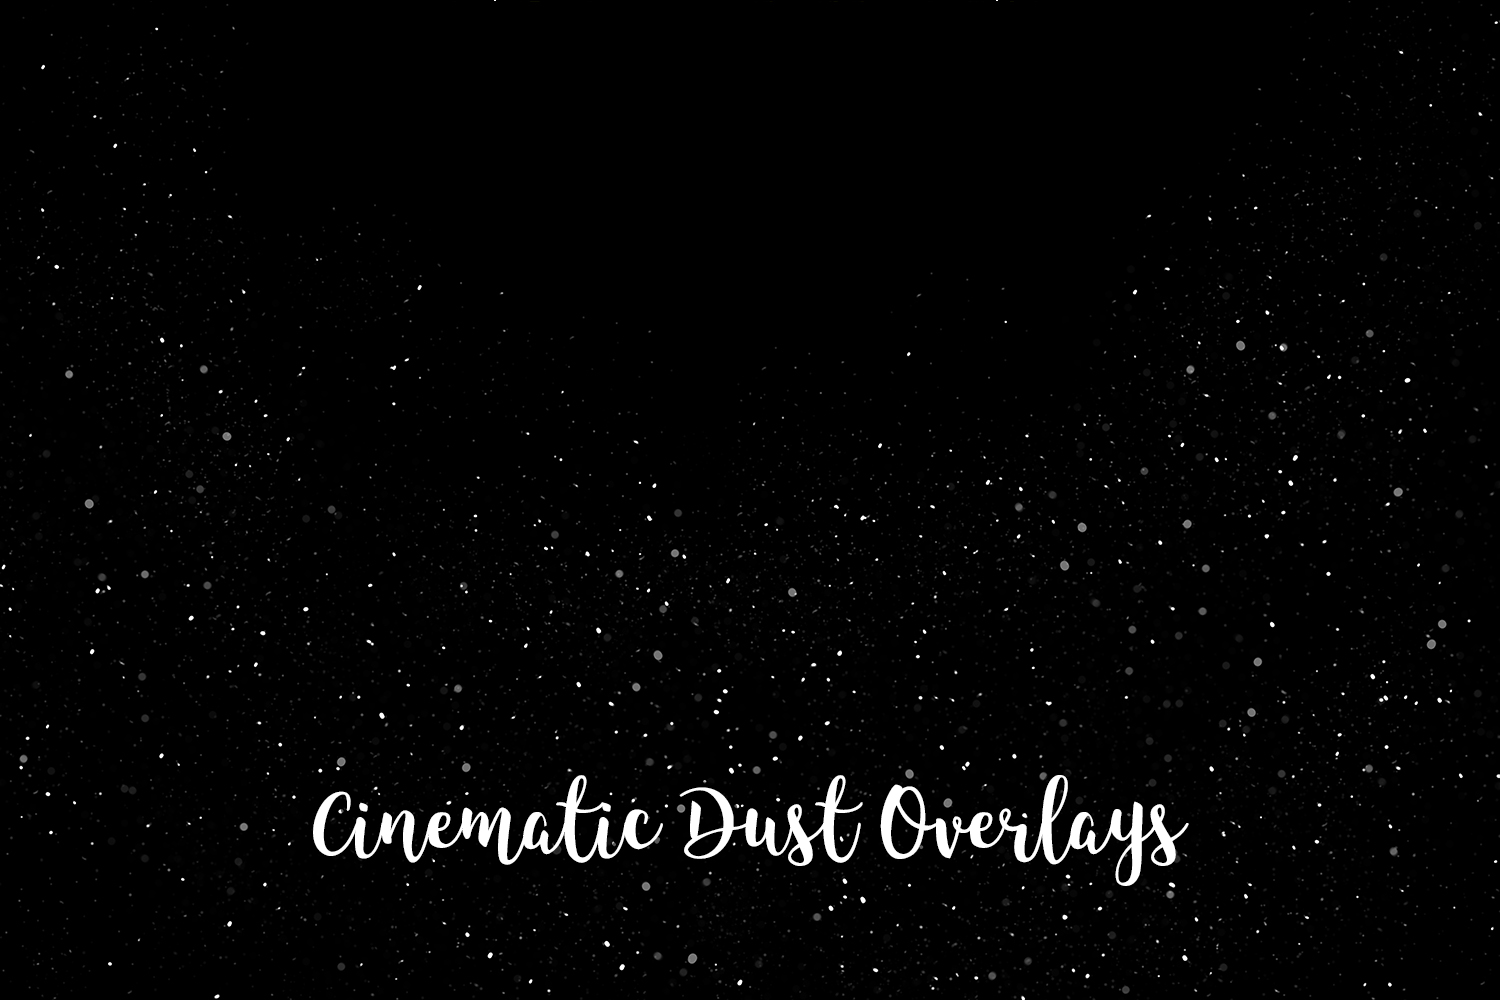 Cinematic Dust Photo Overlays, Bokeh Light Effects example image 7